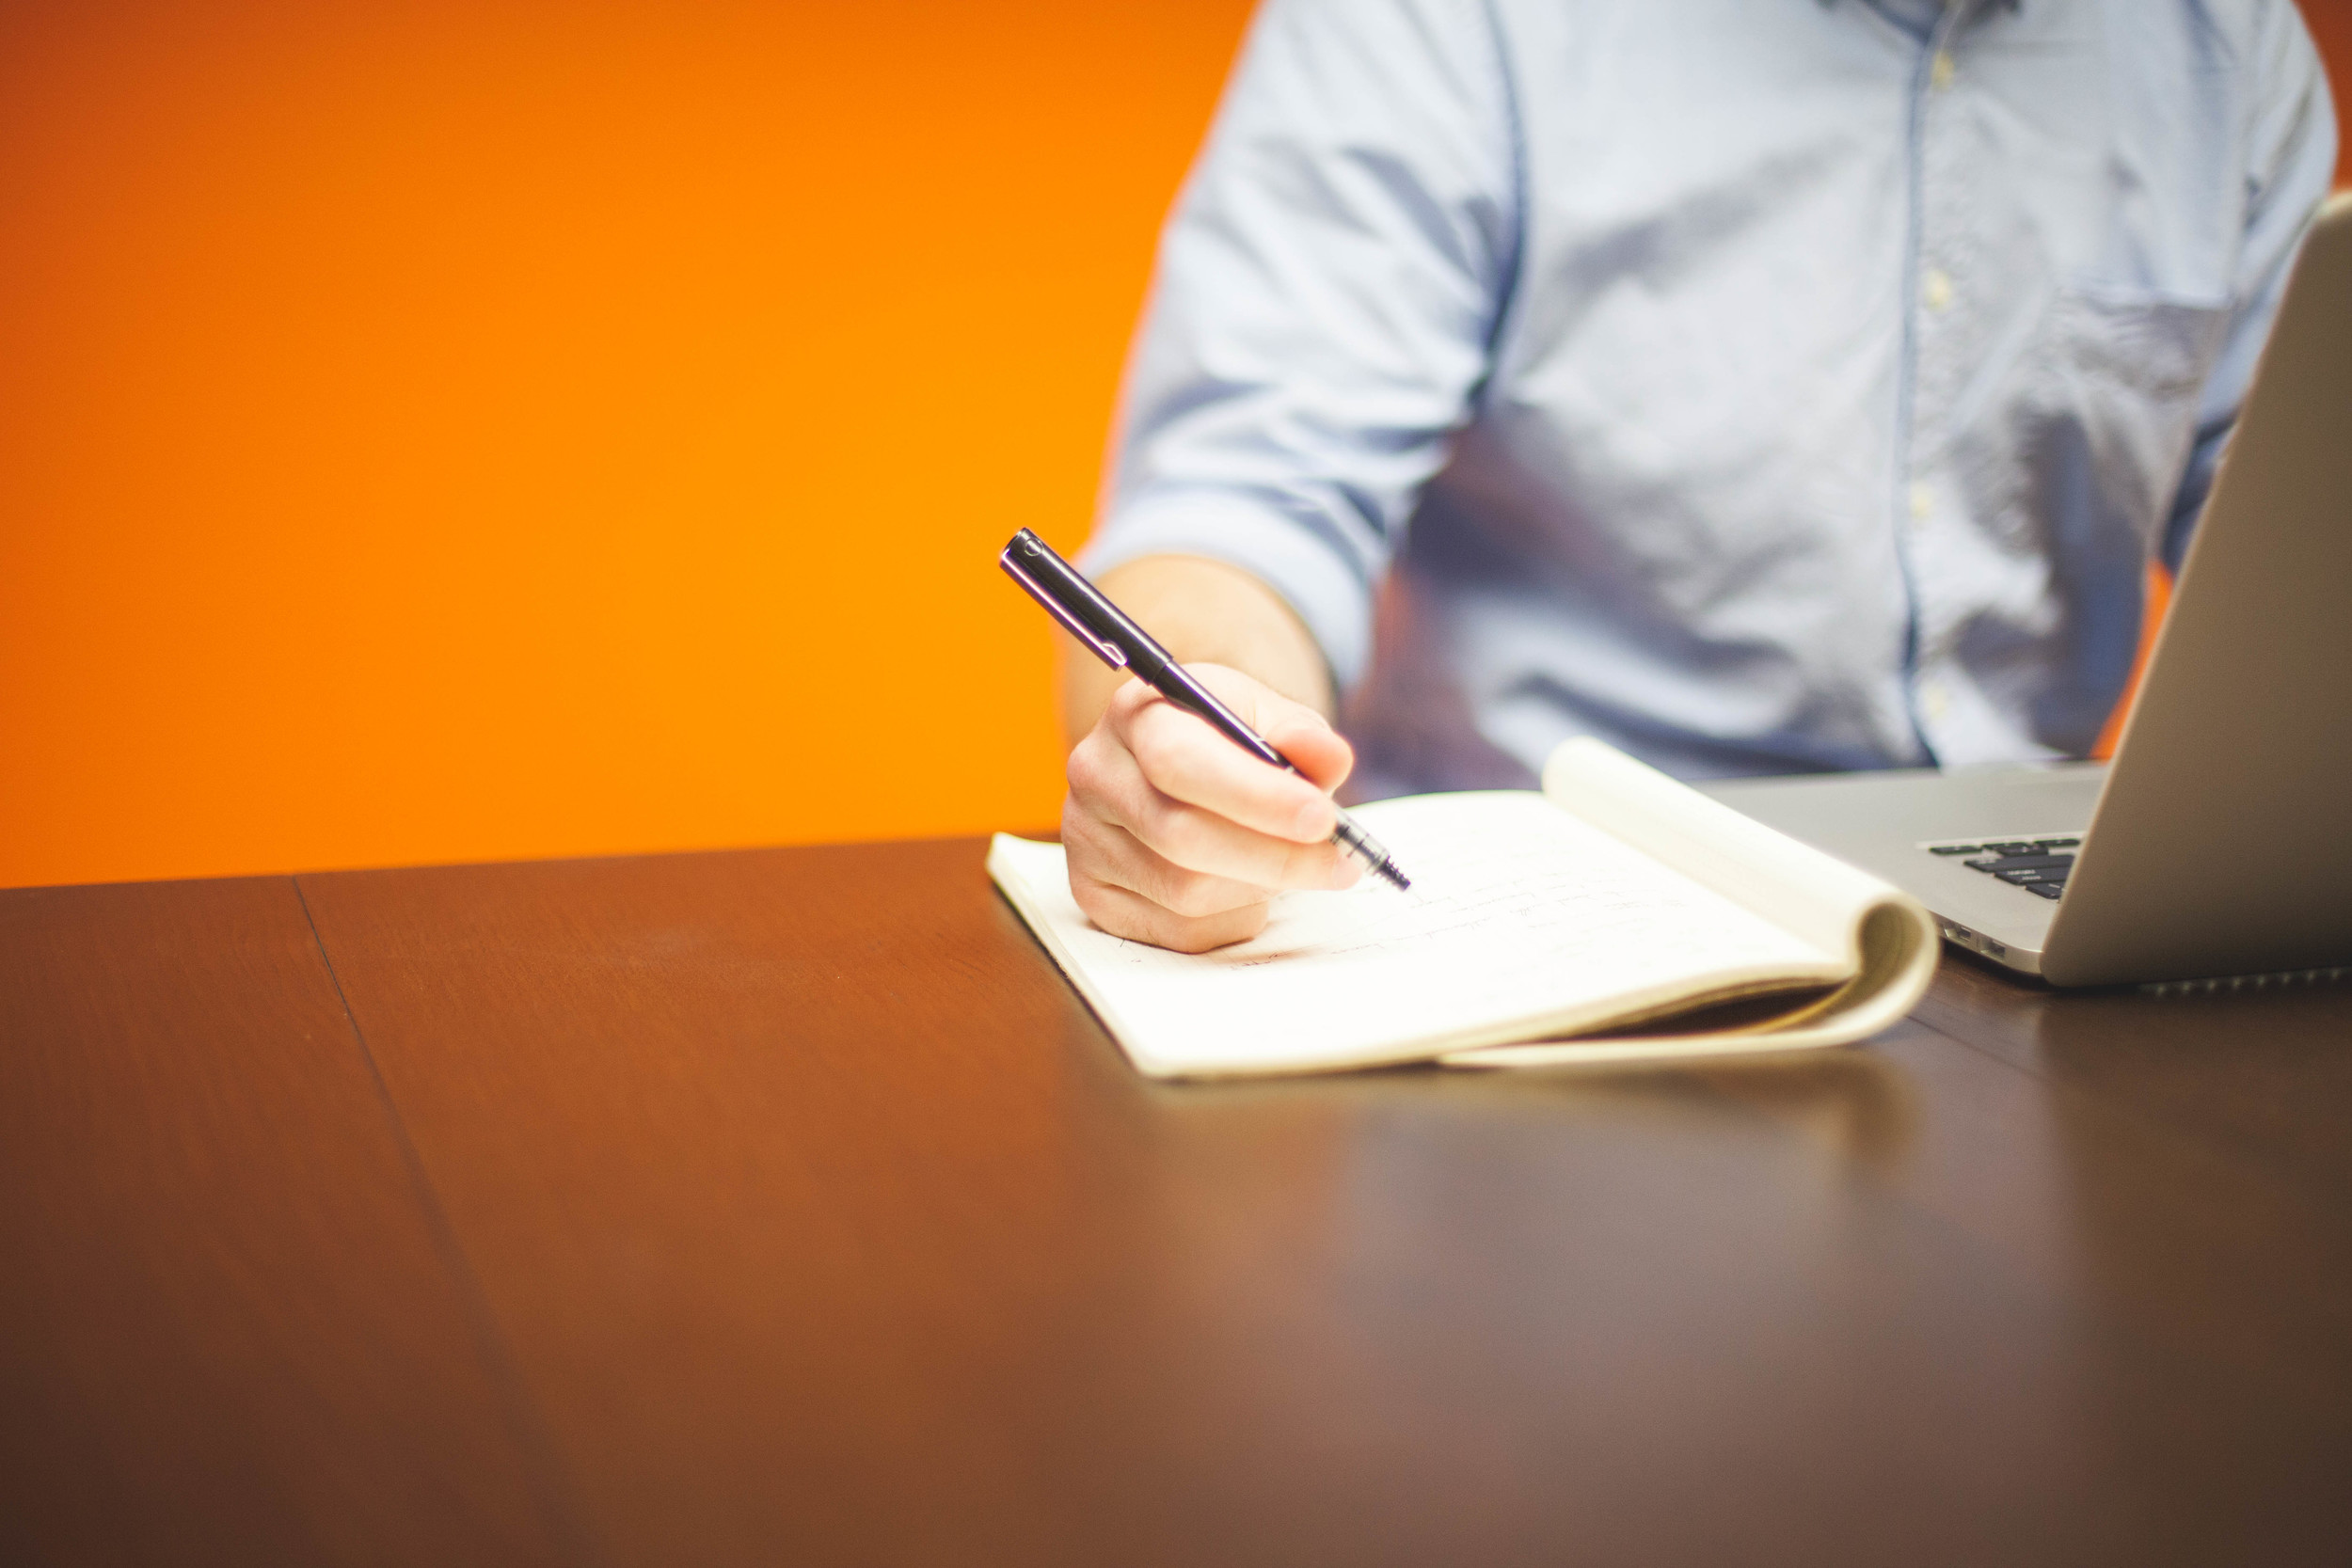 Take notes following candidate interviews